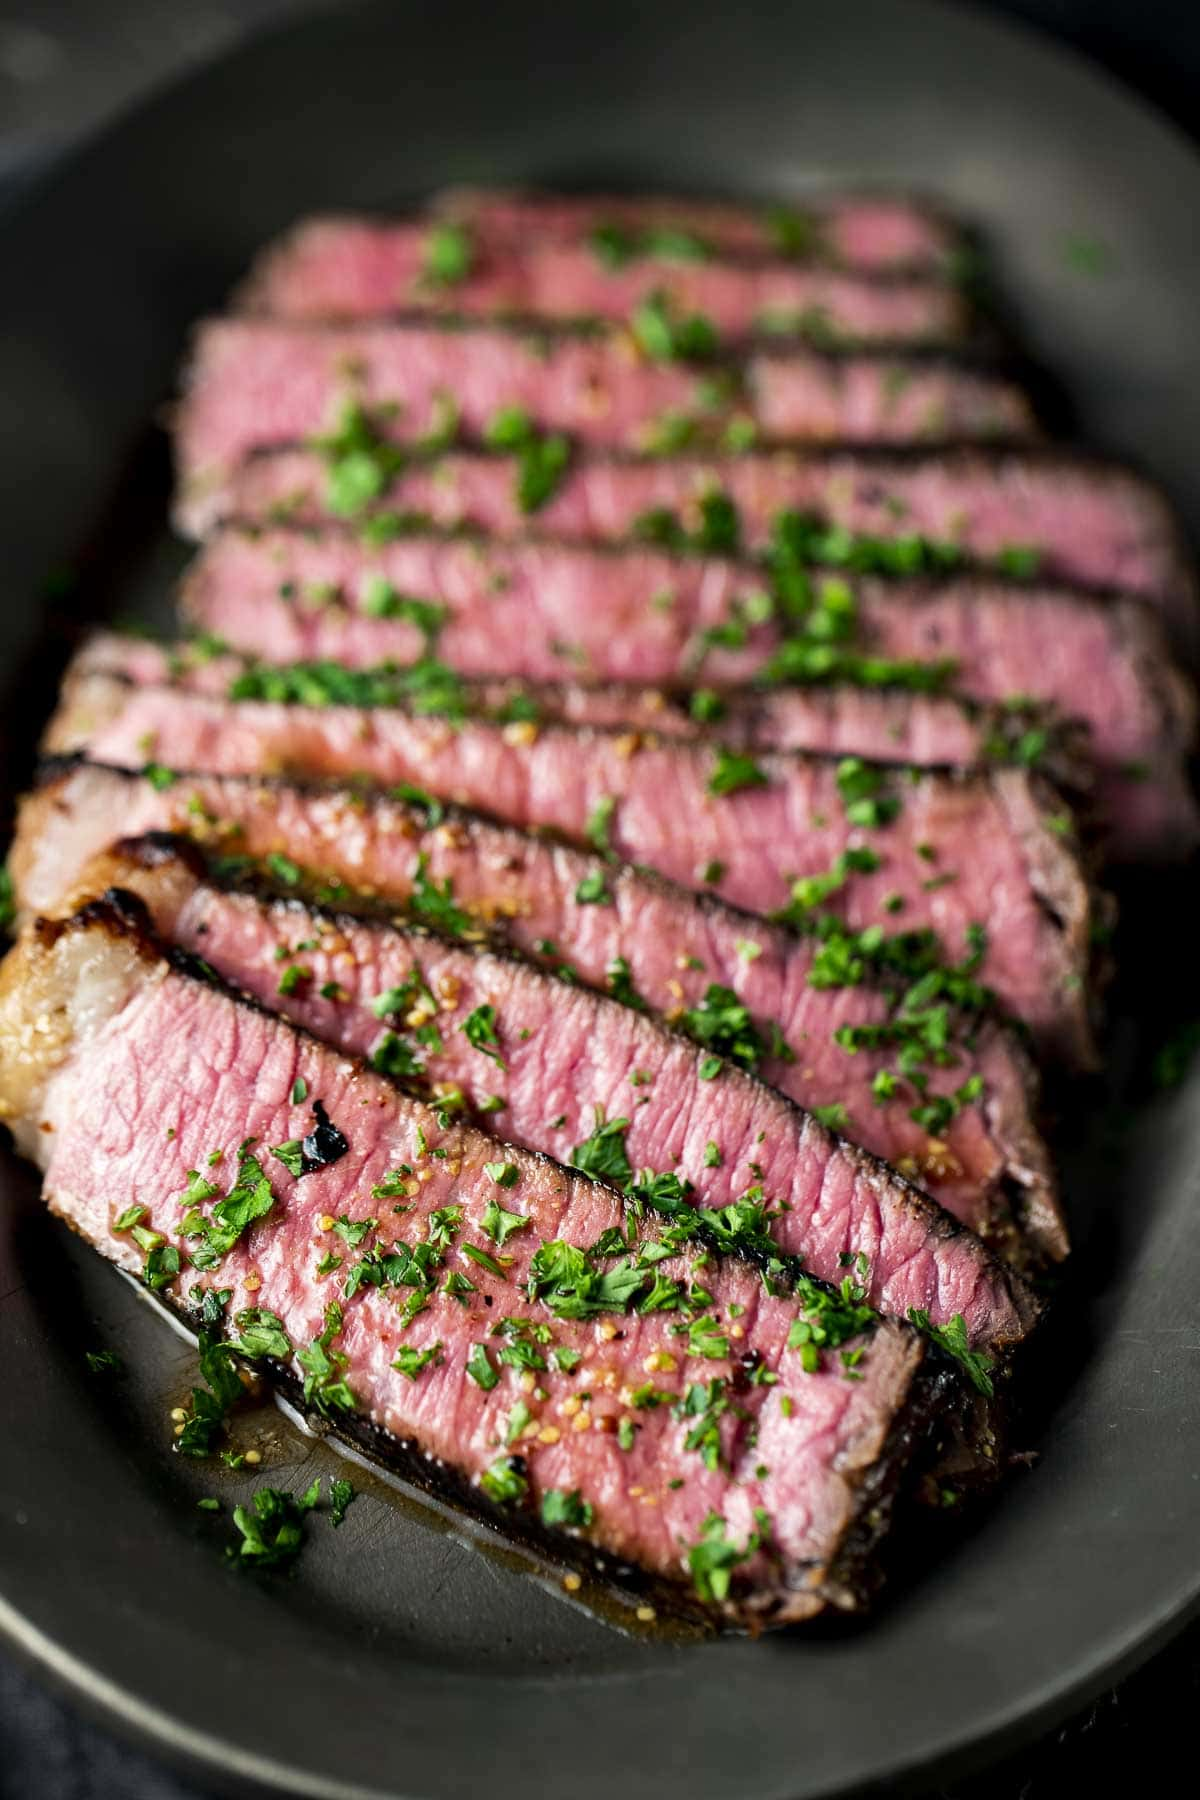 Medium-rare steak cooked sous vide style and sliced.